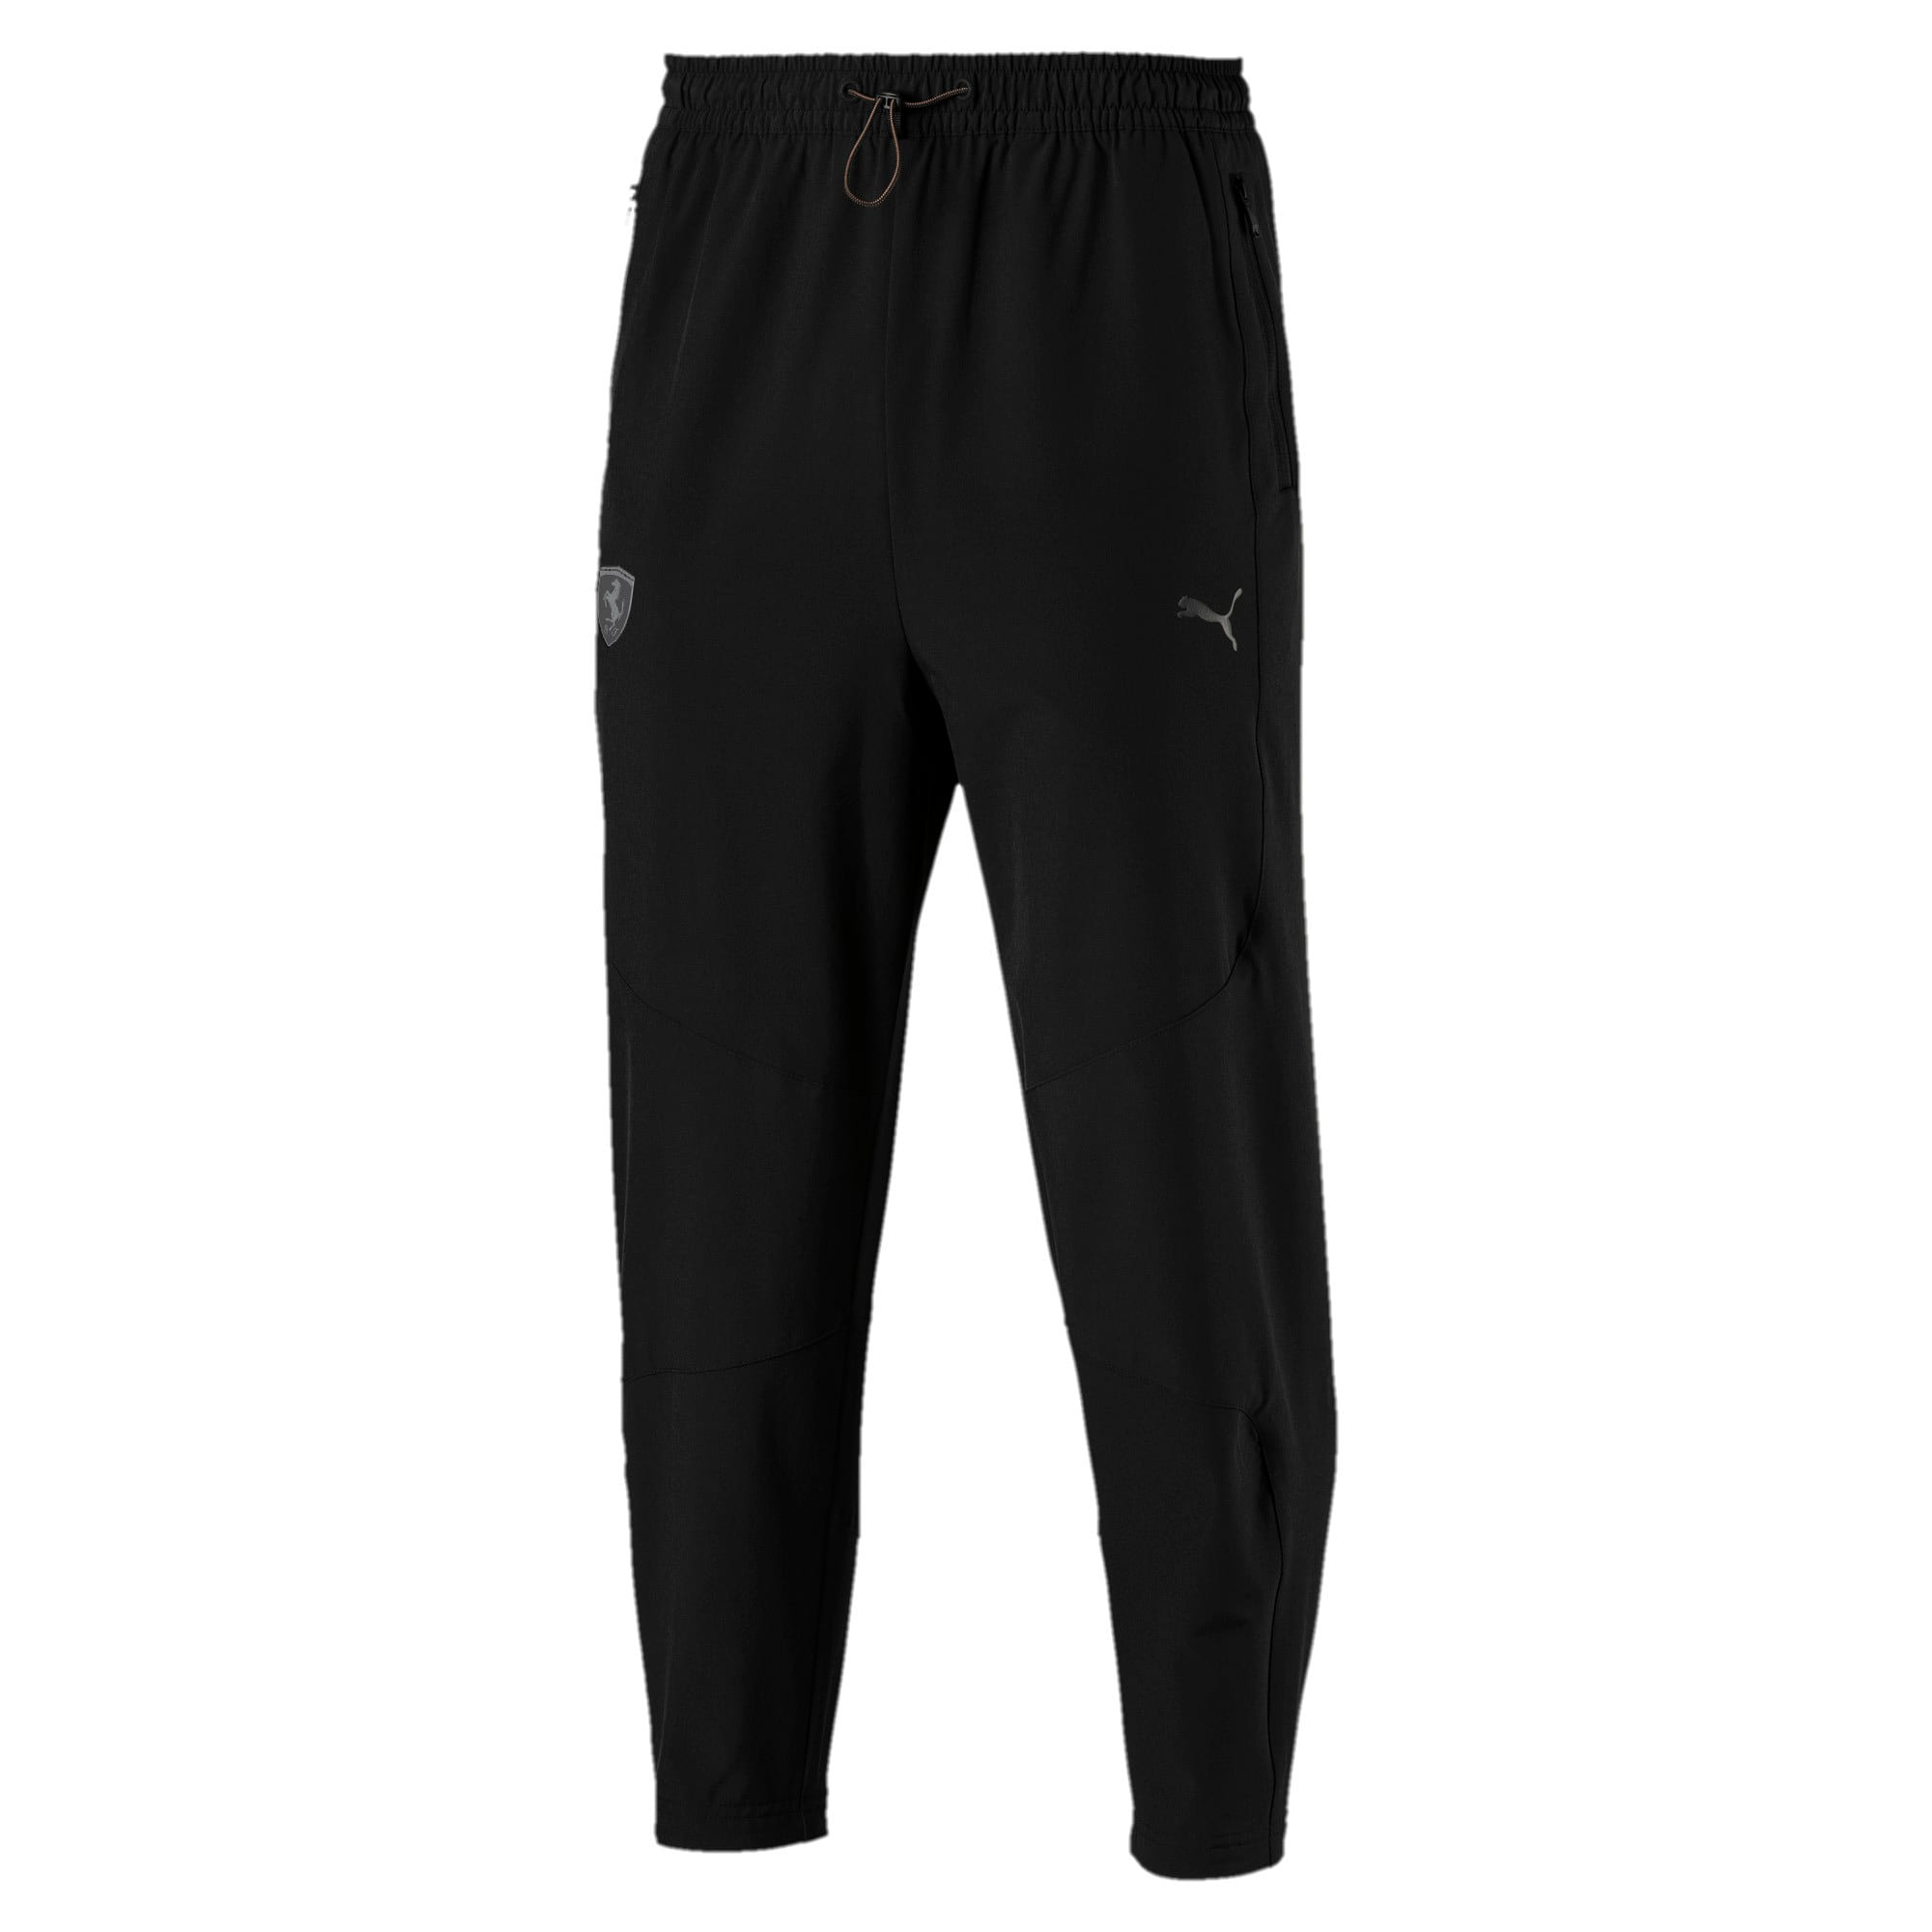 Thumbnail 4 of Scuderia Ferrari Life Men's Sweatpants, Puma Black, medium